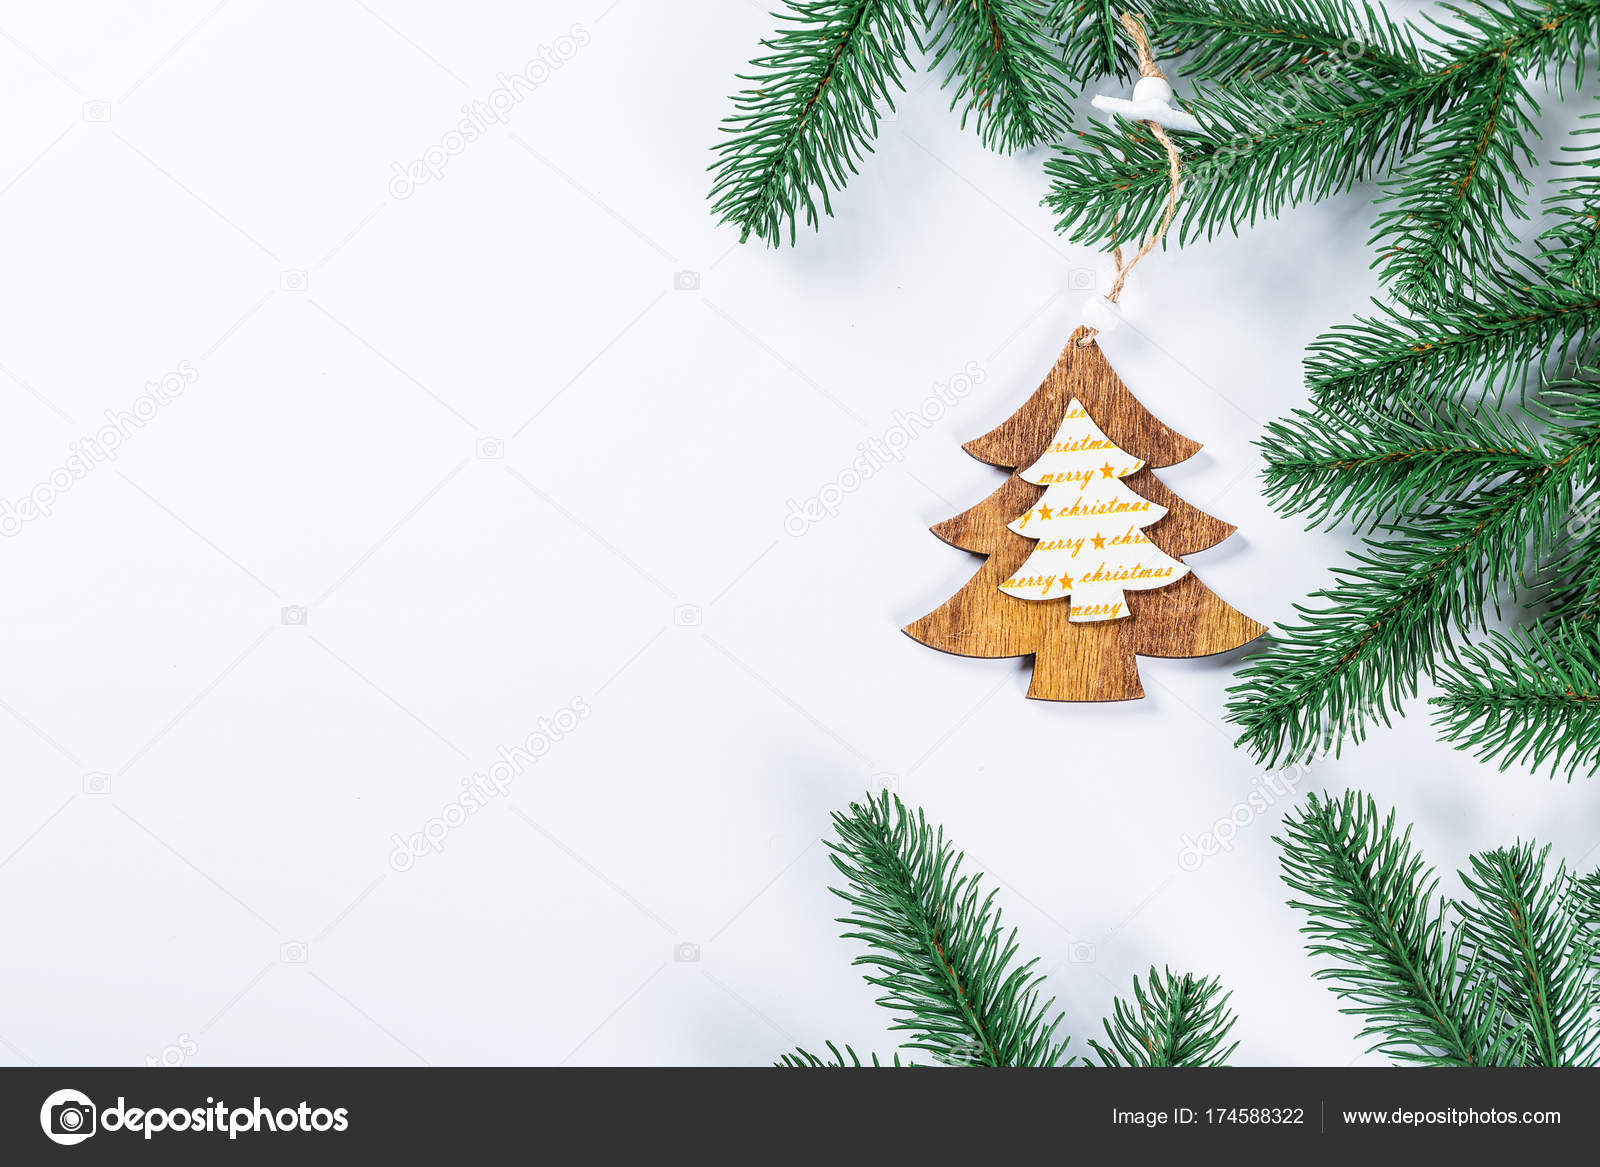 Holiday Christmas Background.Christmas Background Simple Christmas Holiday Composition